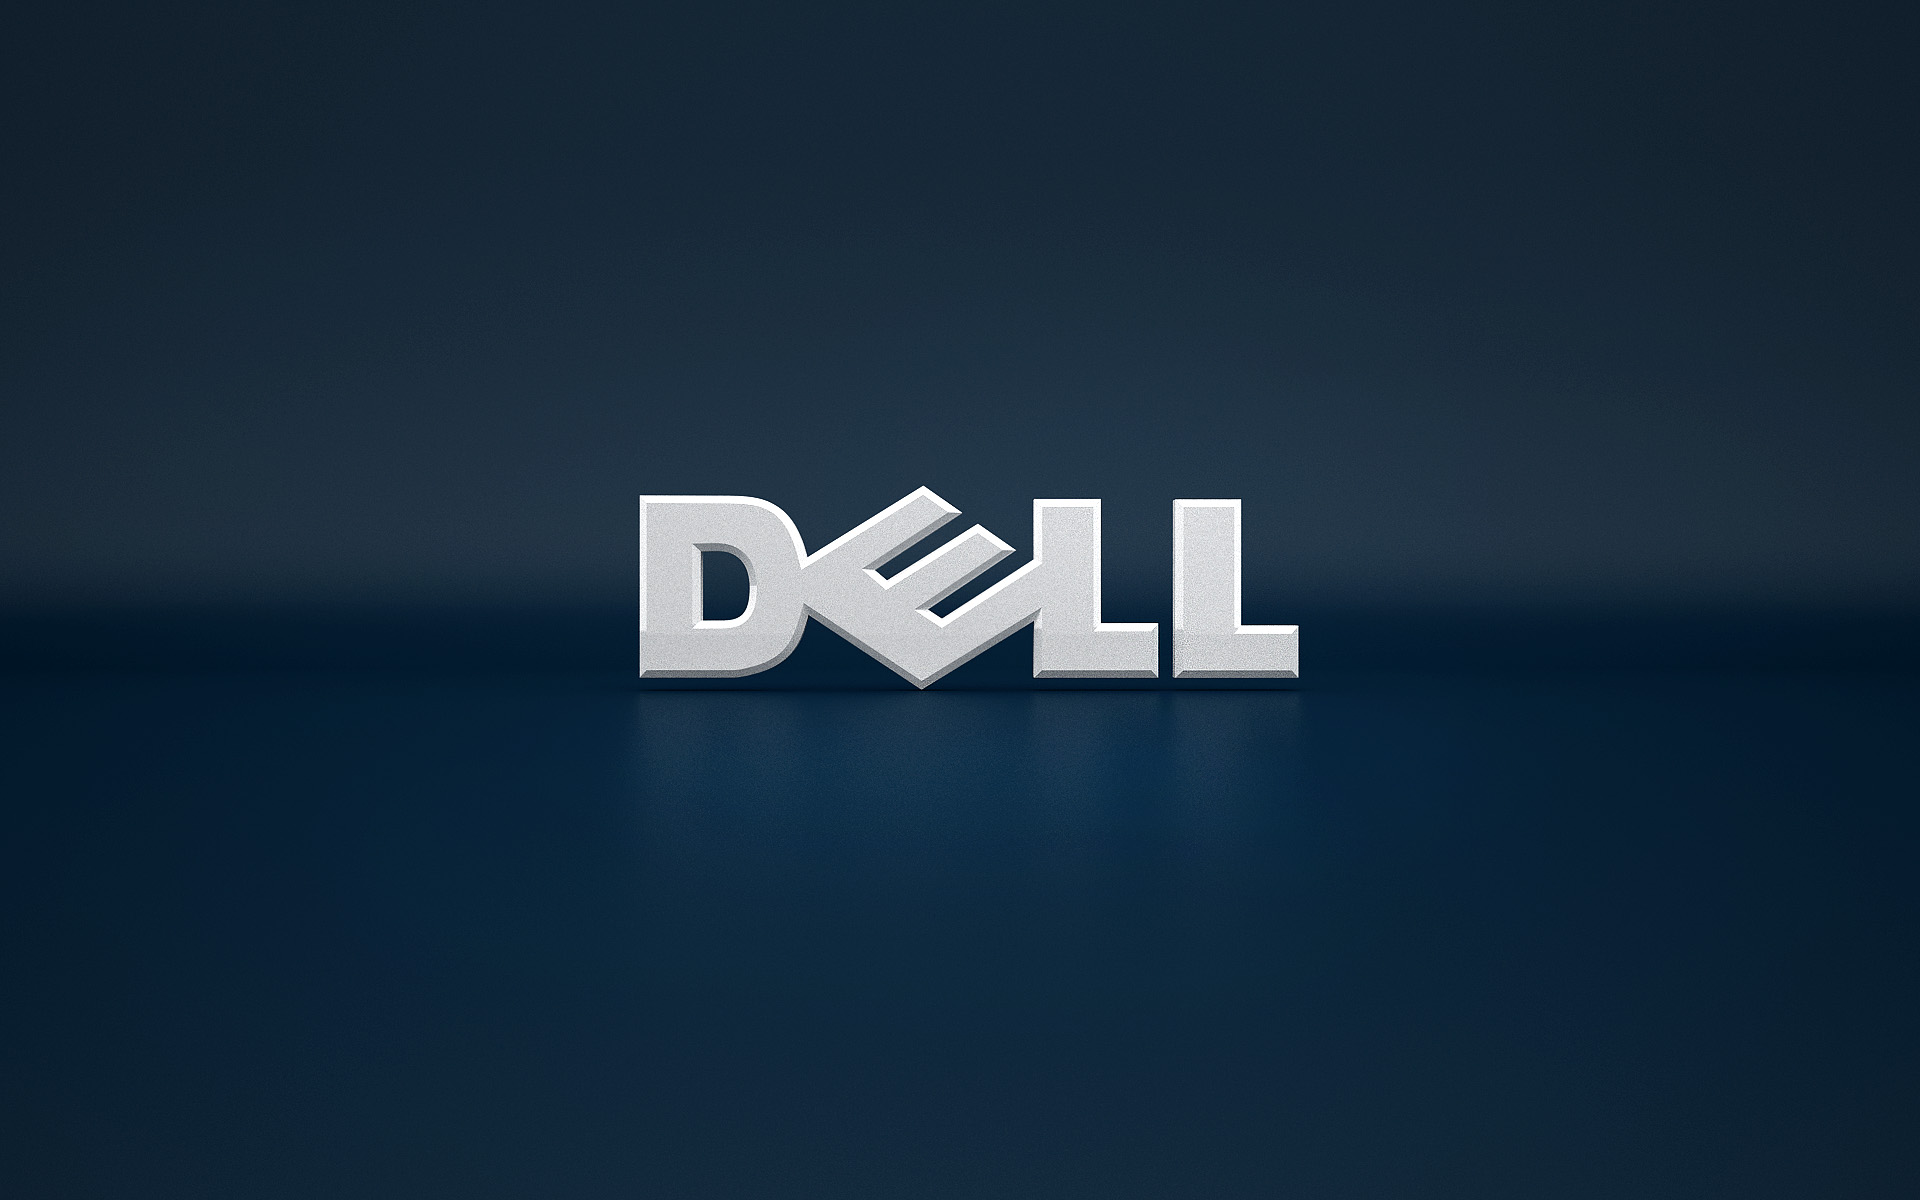 dell wallpapers 9